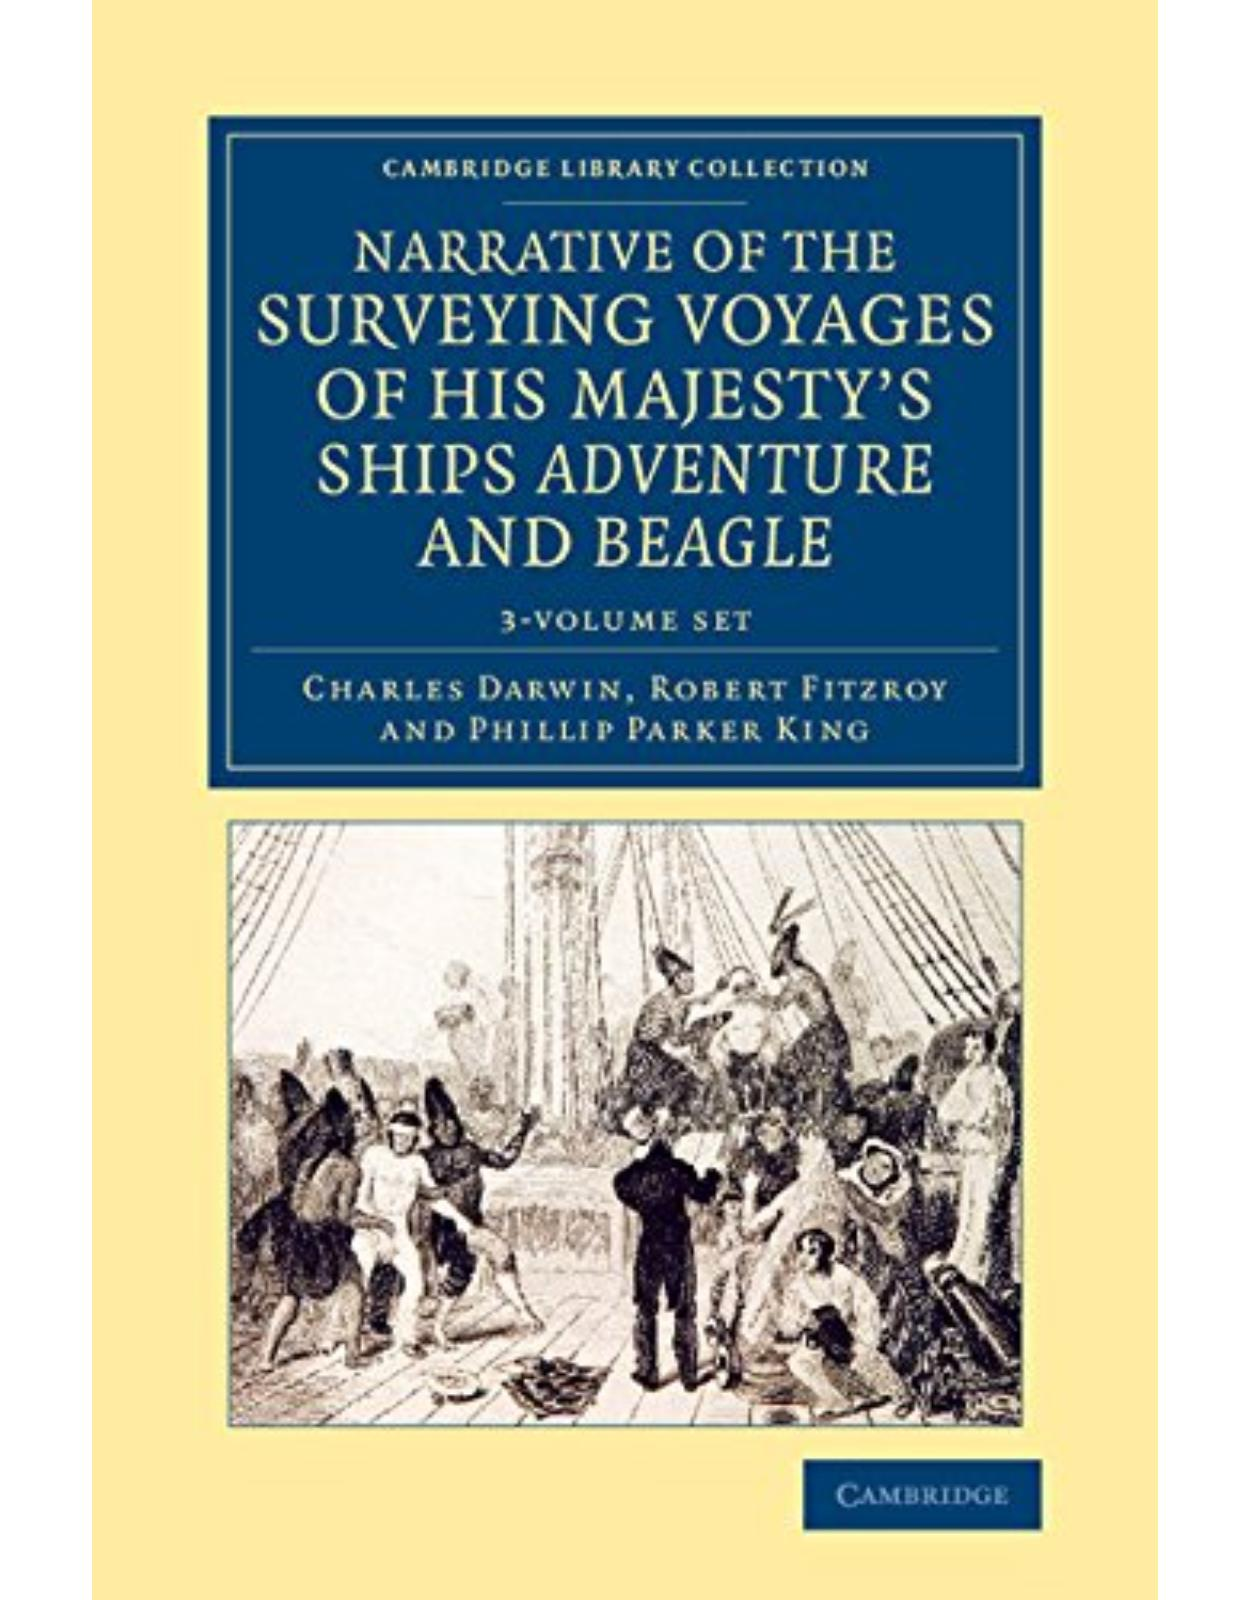 Narrative of the Surveying Voyages of His Majesty's Ships Adventure and Beagle 3 Volume Set: Between the Years 1826 and 1836 (Cambridge Library Collection - Maritime Exploration)